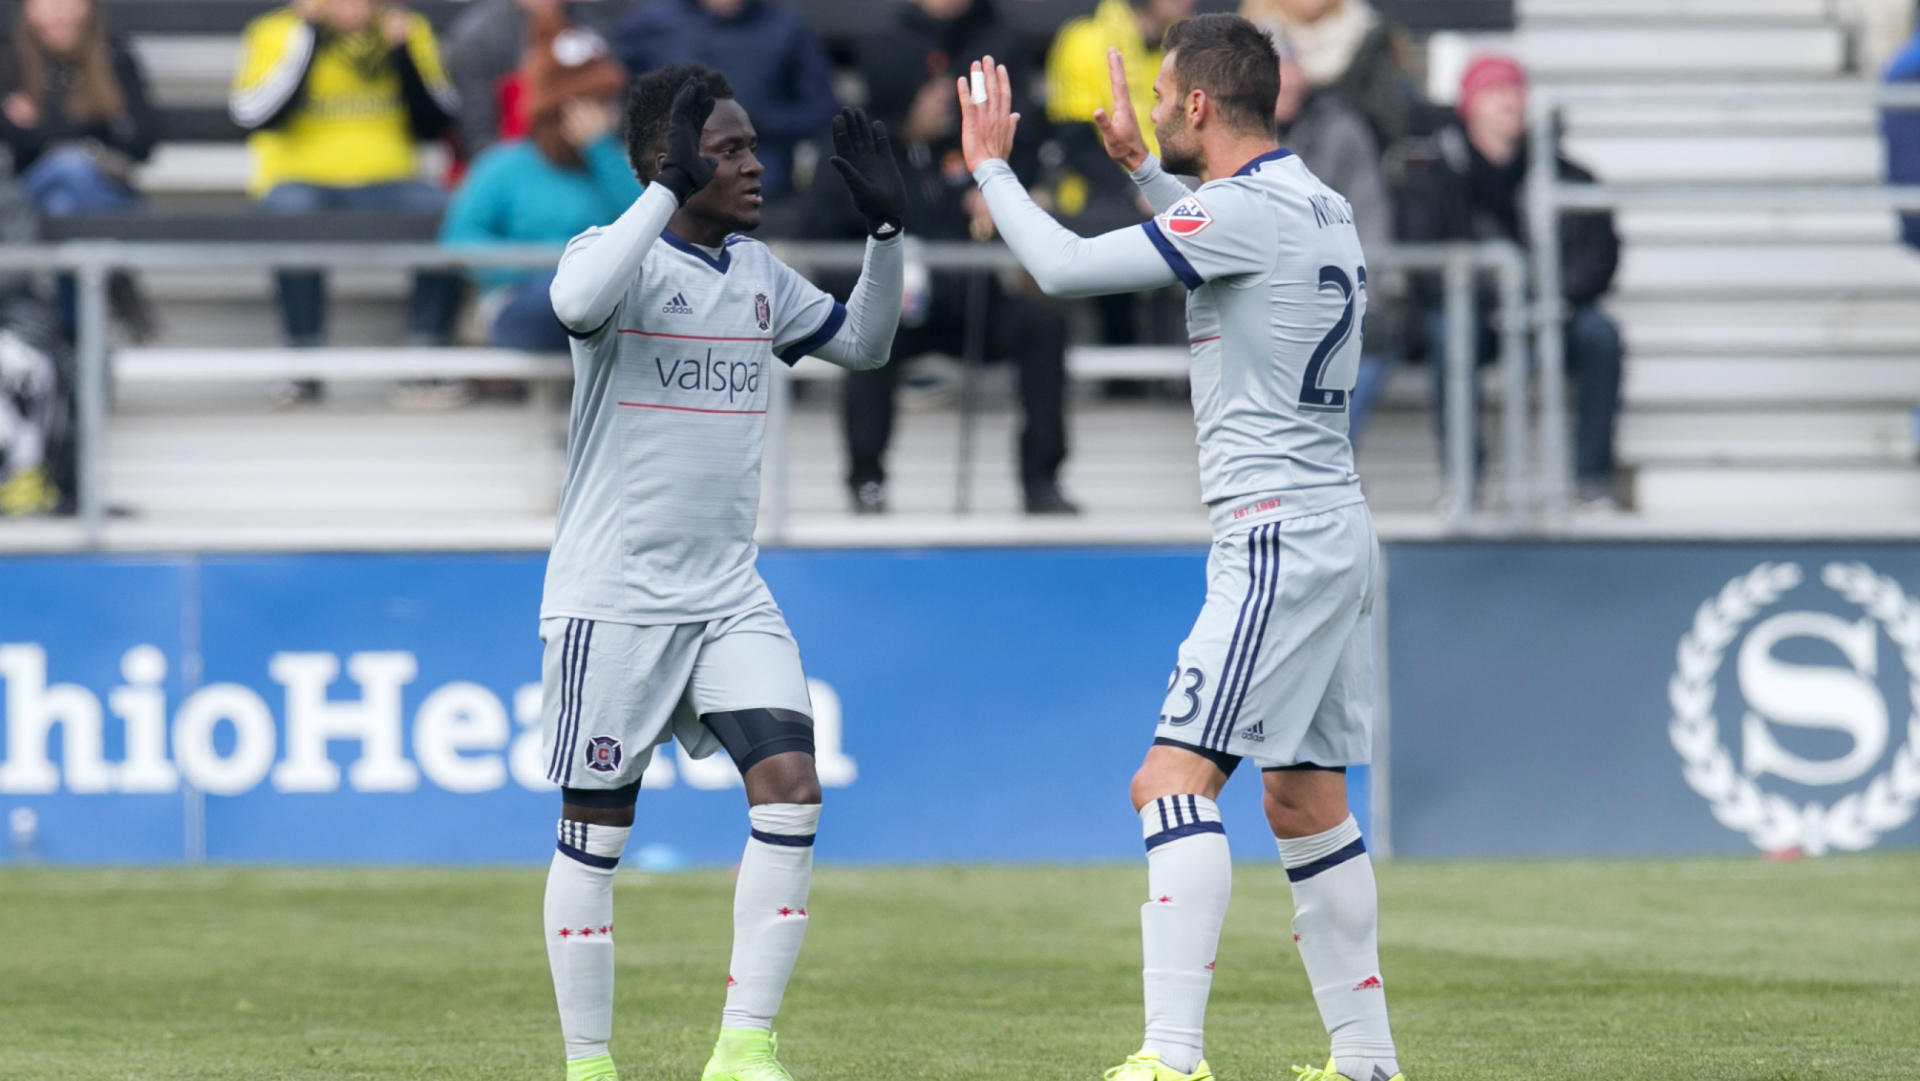 David Accam Nemanja Nikolic Chicago Fire